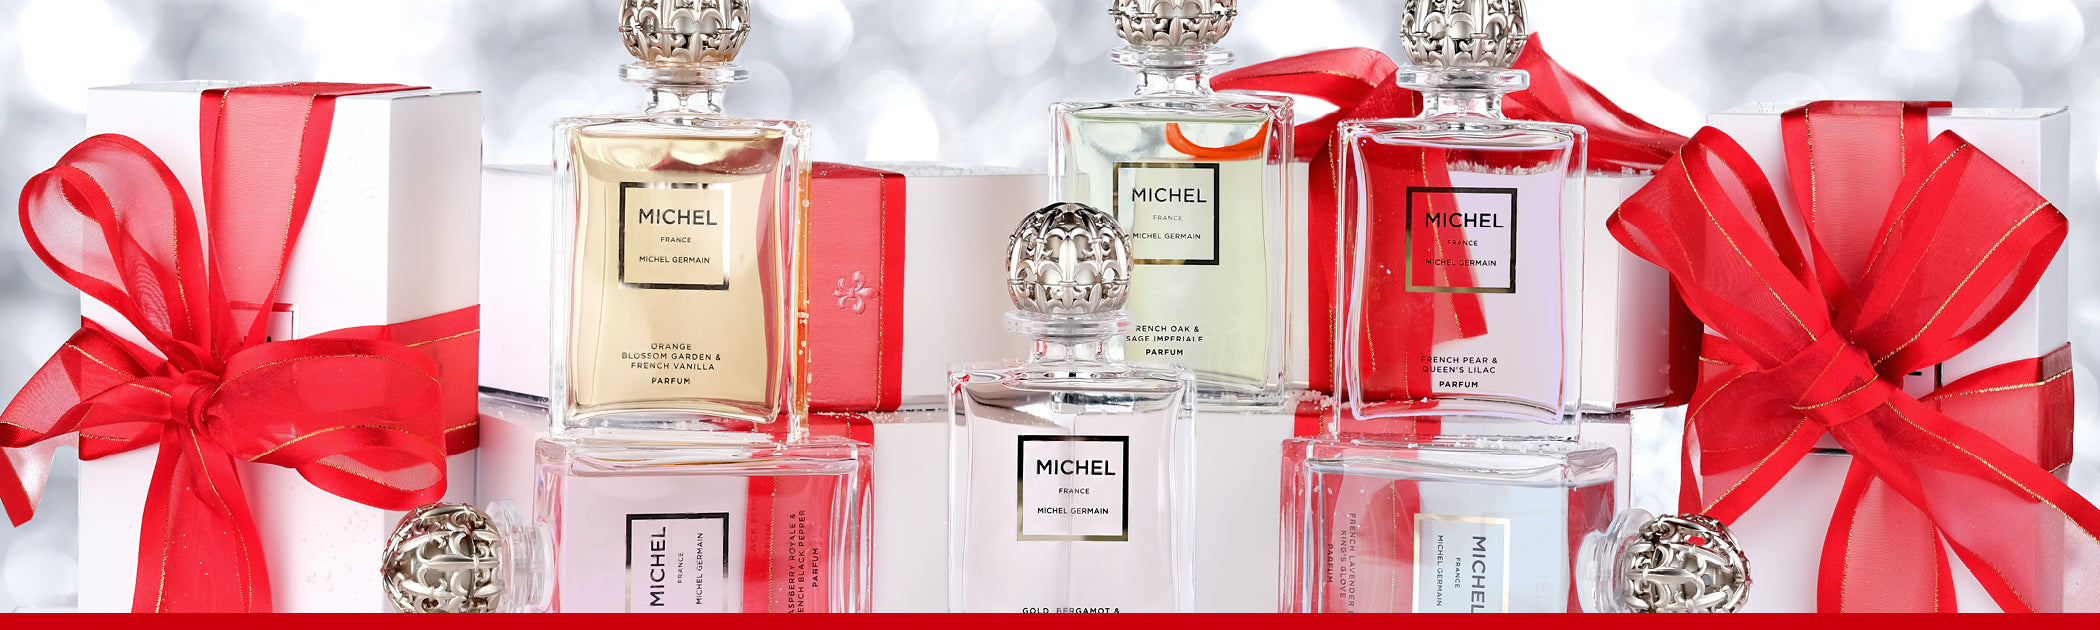 michel-germain-gifts-for-newlyweds-michel-collection